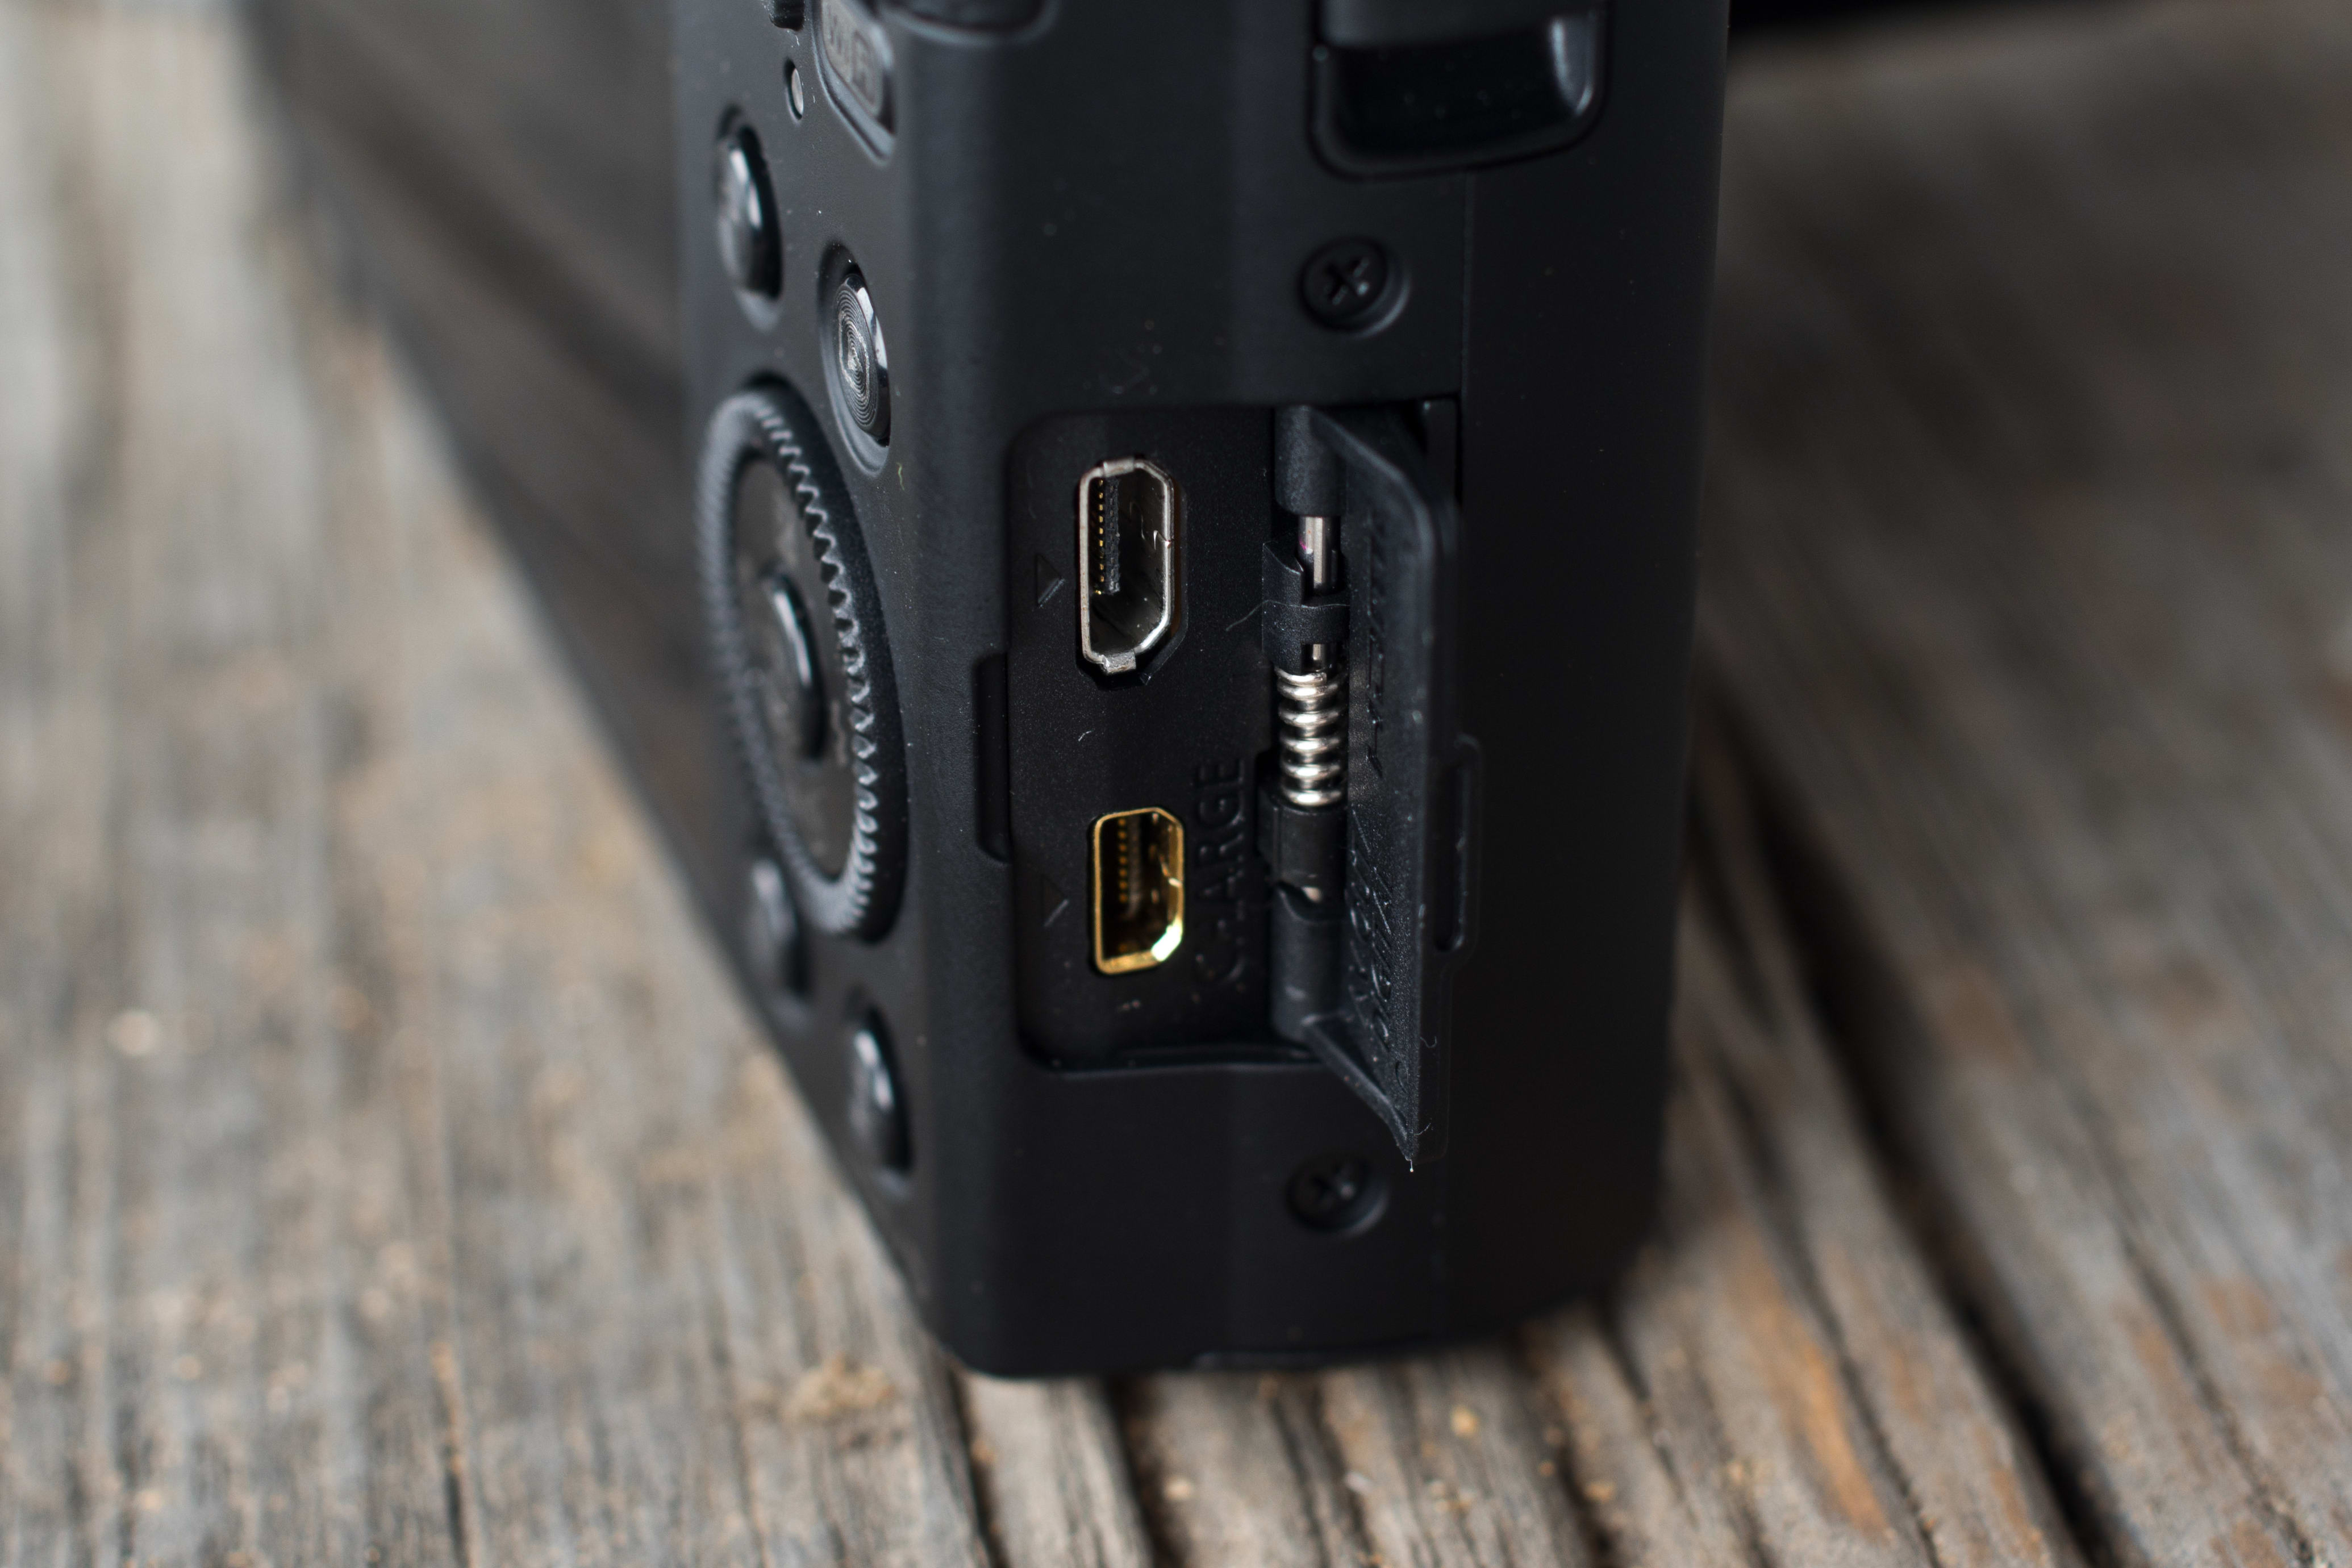 A picture of the Panasonic Lumix ZS40's ports.